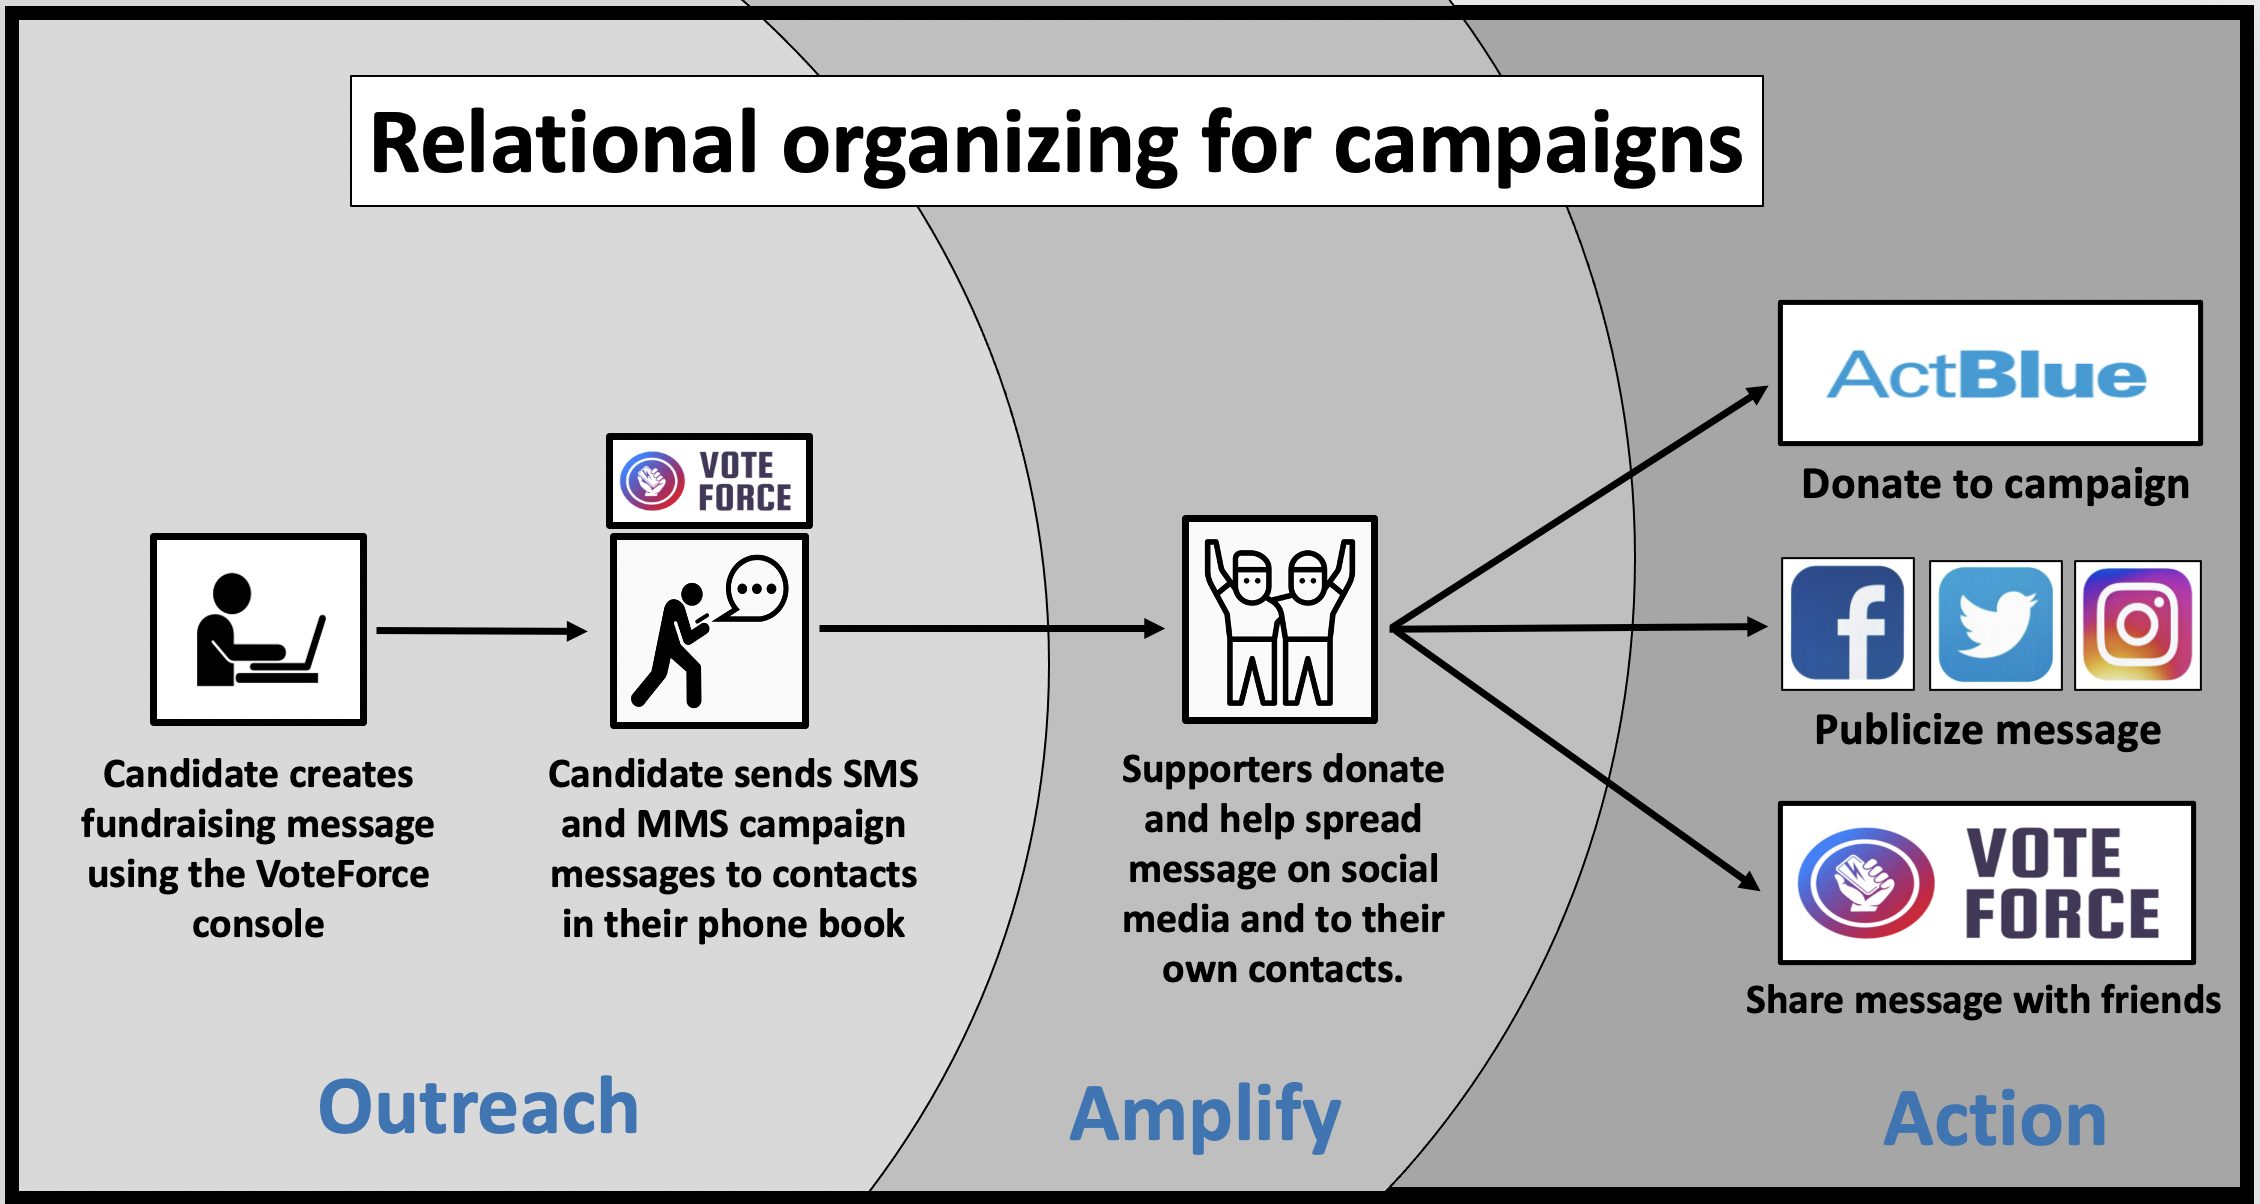 VoteForce is a relational organizing app that helps campaigns of all sizes.